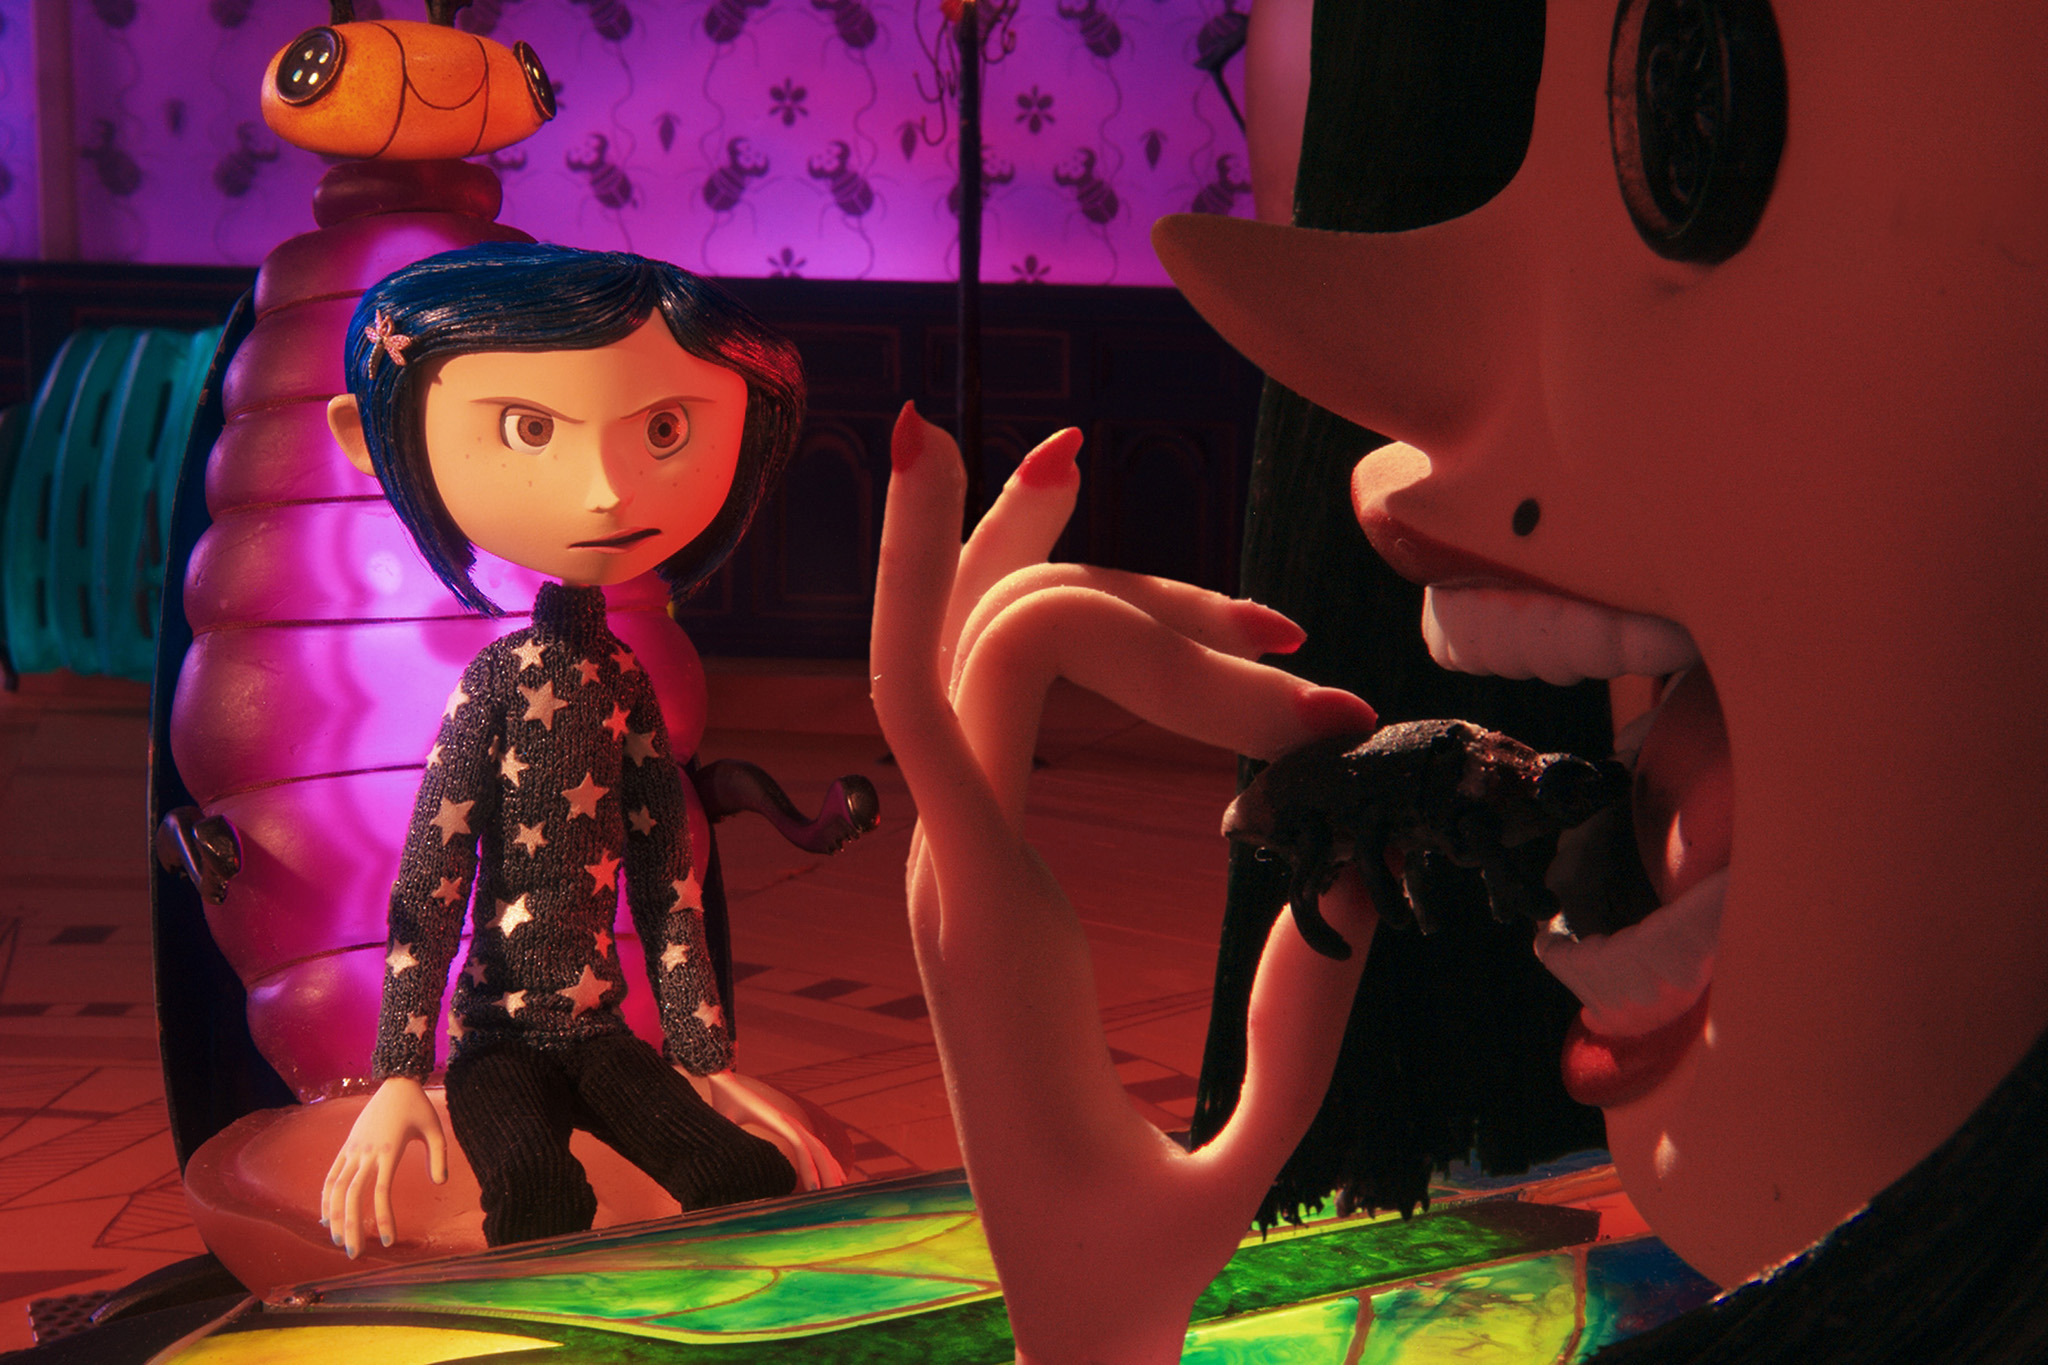 Best animated movies: Coraline